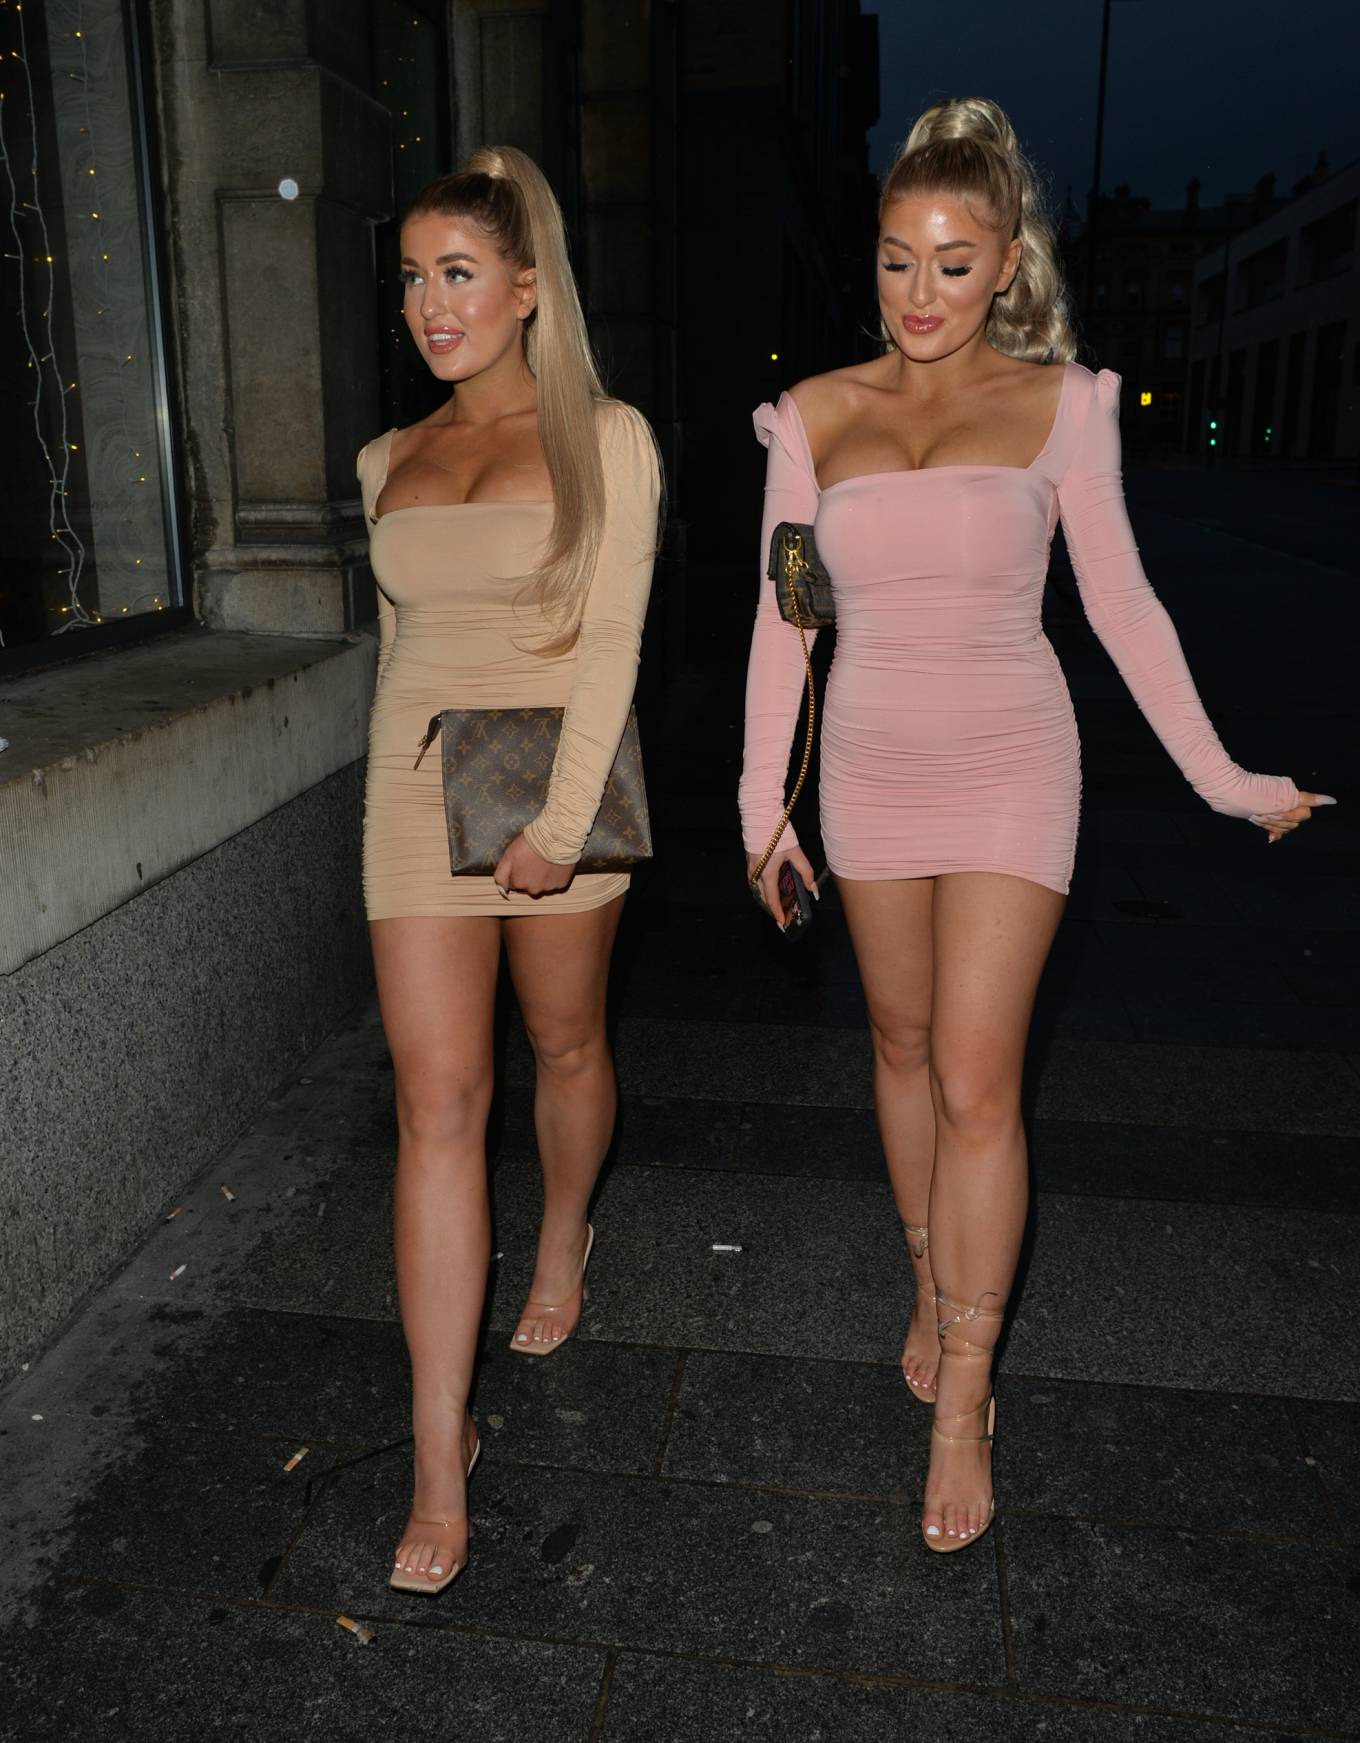 Eve Gale 2020 : Jess and Eve Gale – Night out for dinner in Liverpool -07